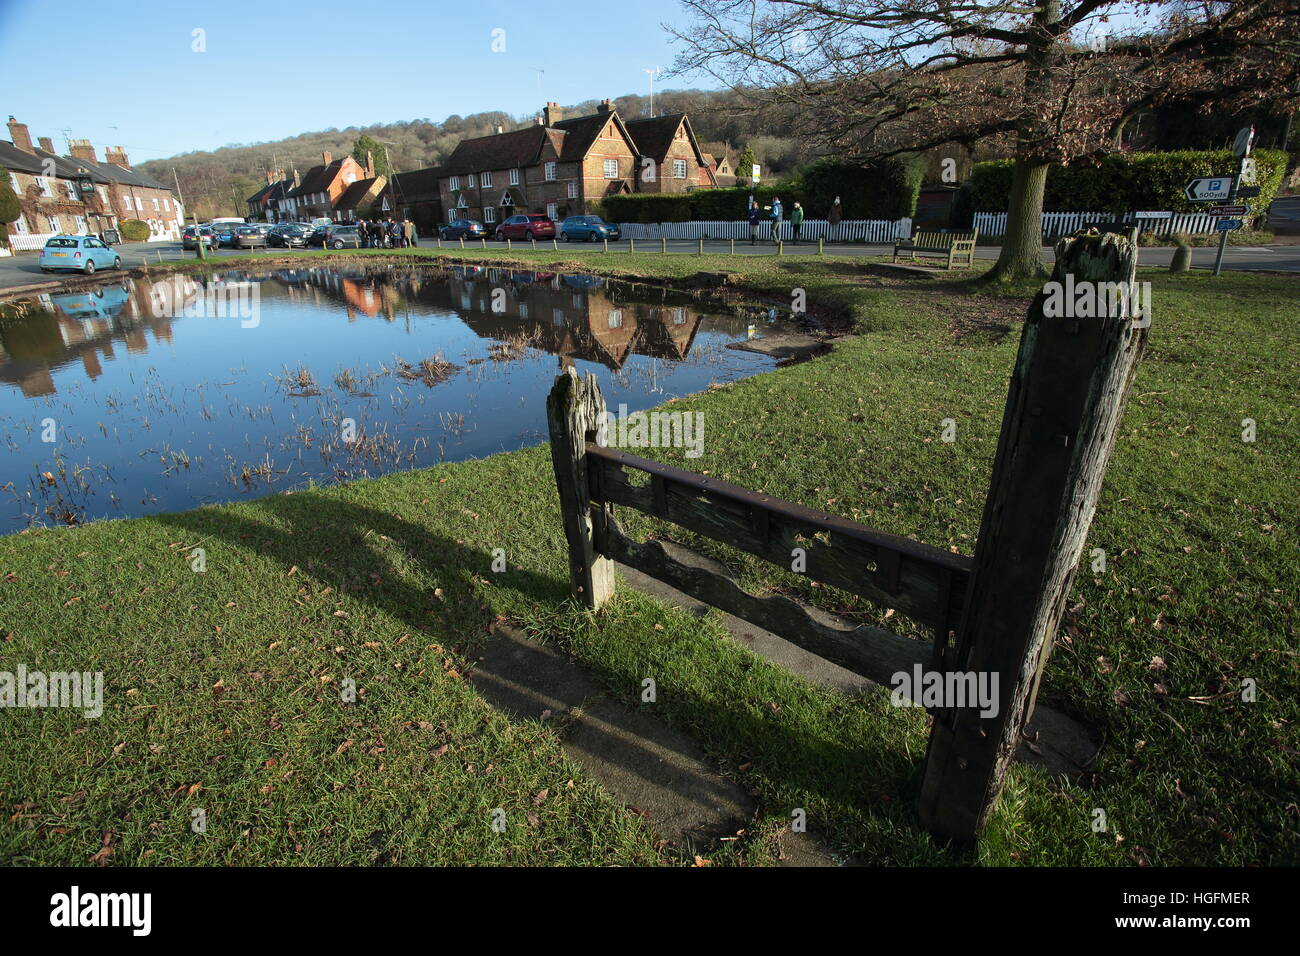 The pond in Aldbury,Hertfordshire on a sunny winters day,with the stocks in foreground. - Stock Image